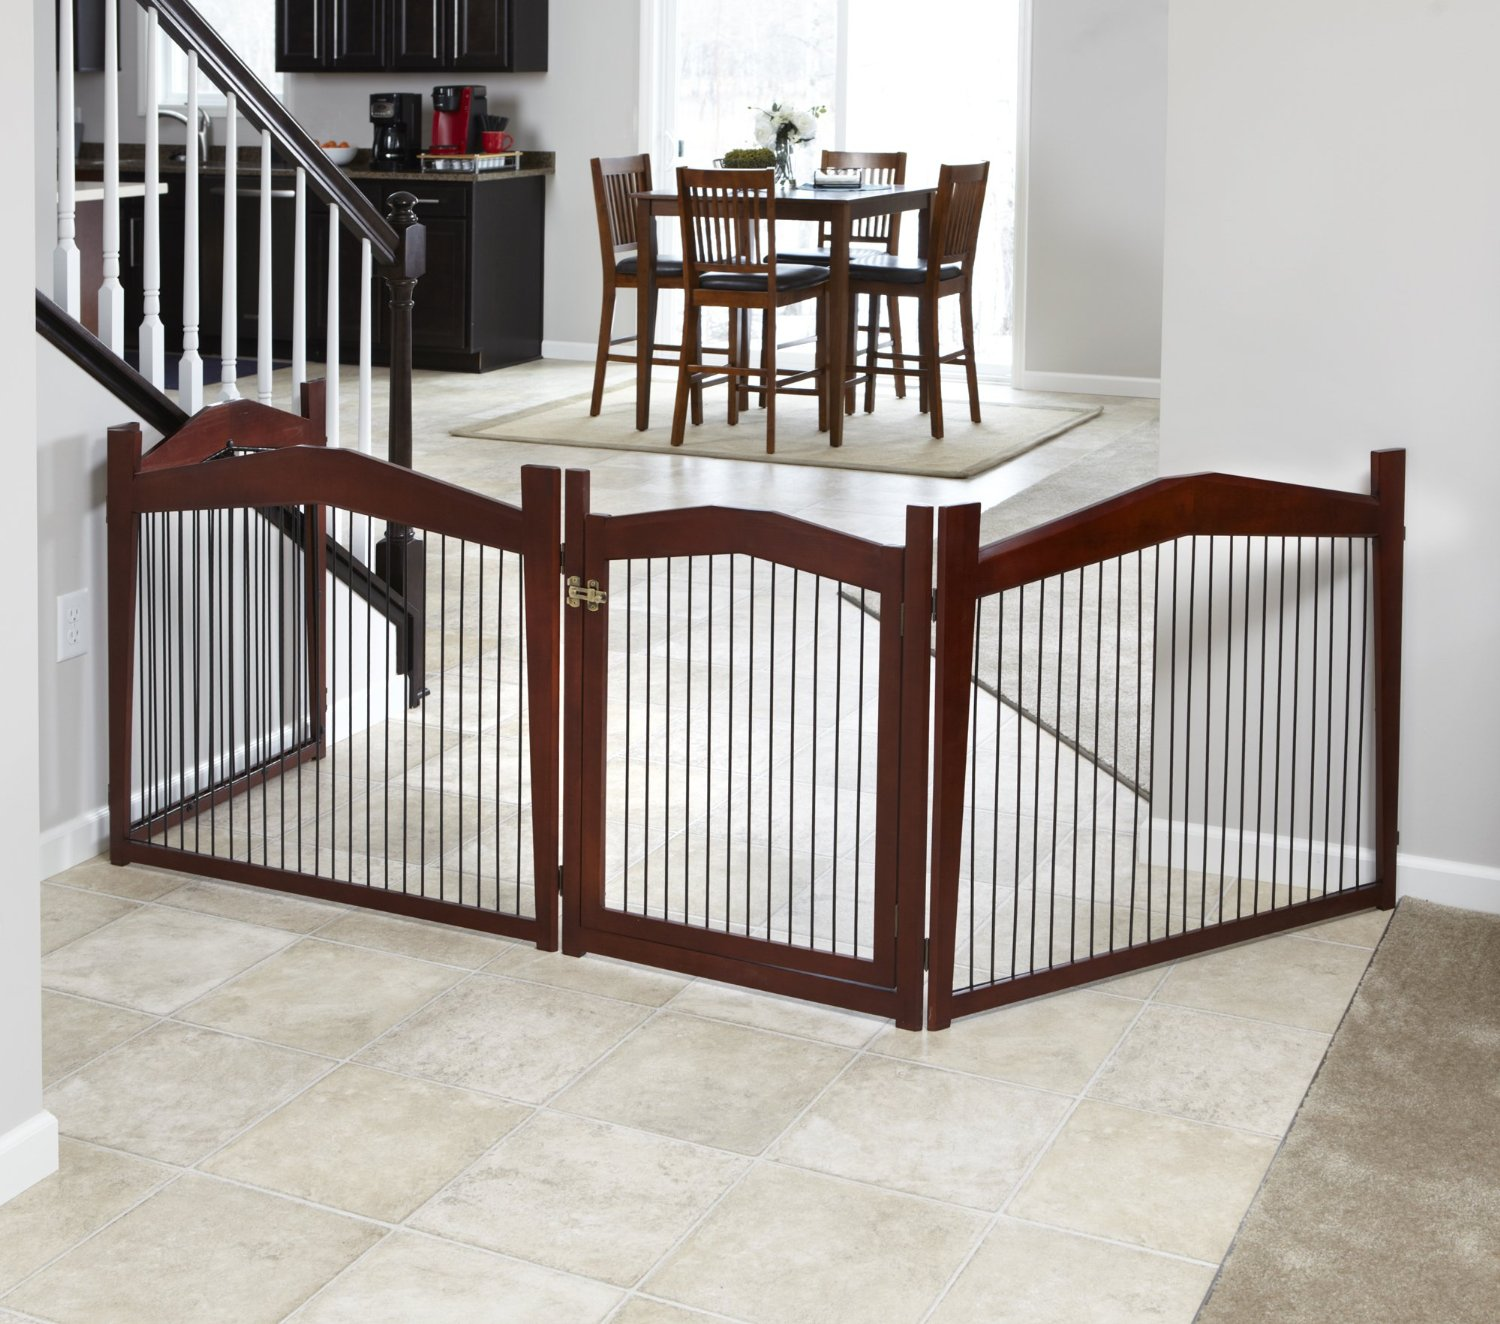 dog crates as furniture. Our Recommended Wooden Dog Crates As Furniture .